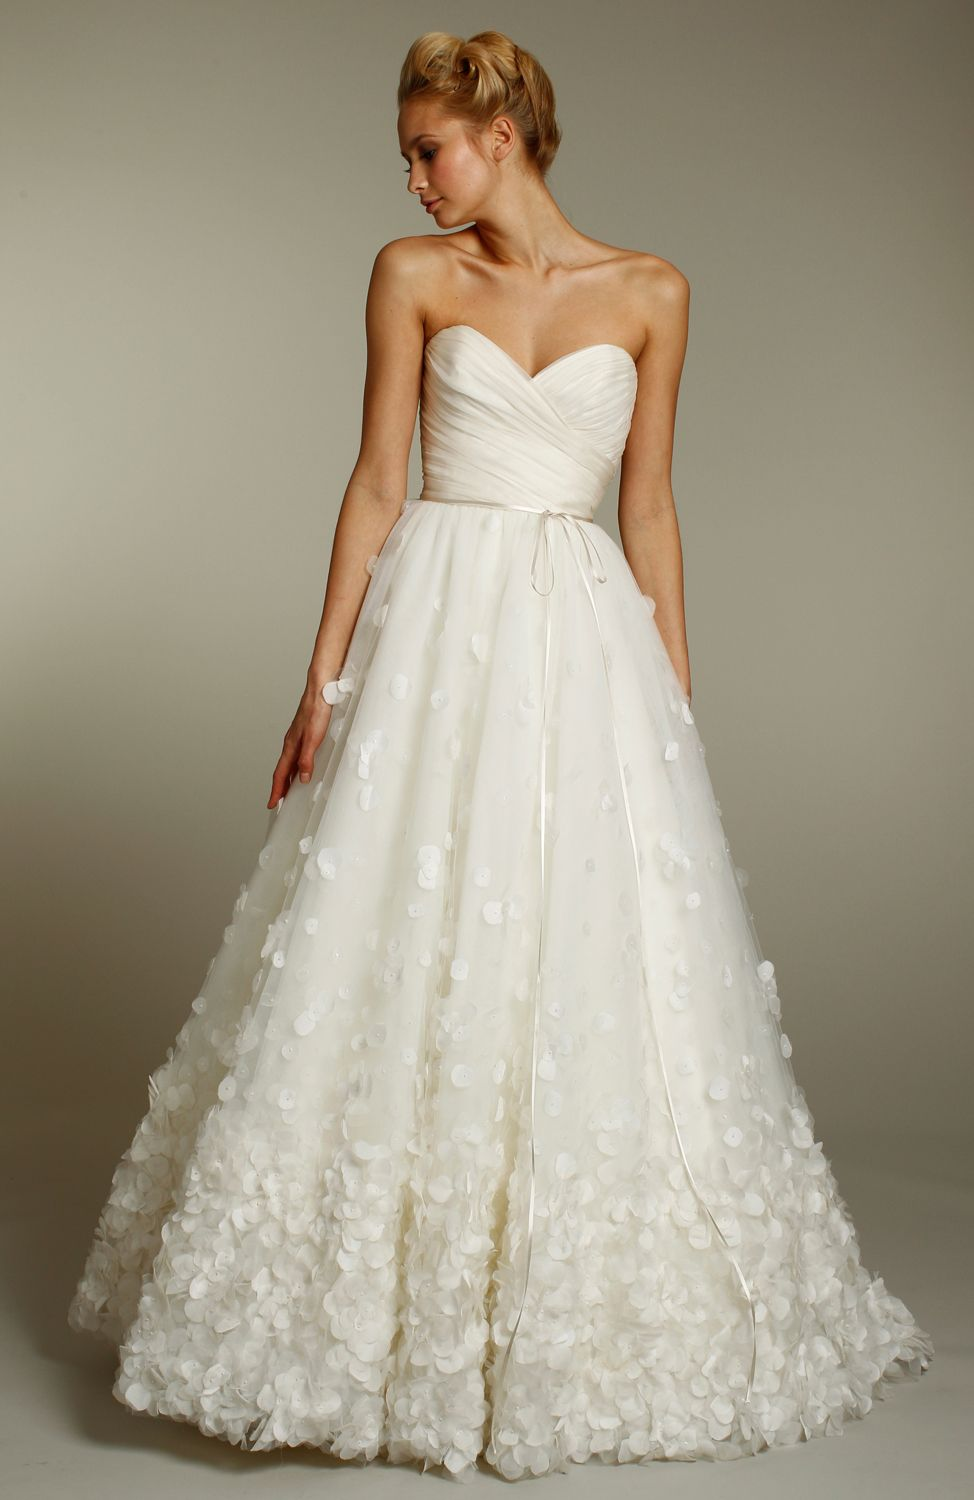 Stylish Plain Ballroom Wedding Gowns With Sweetheart Neckline ...